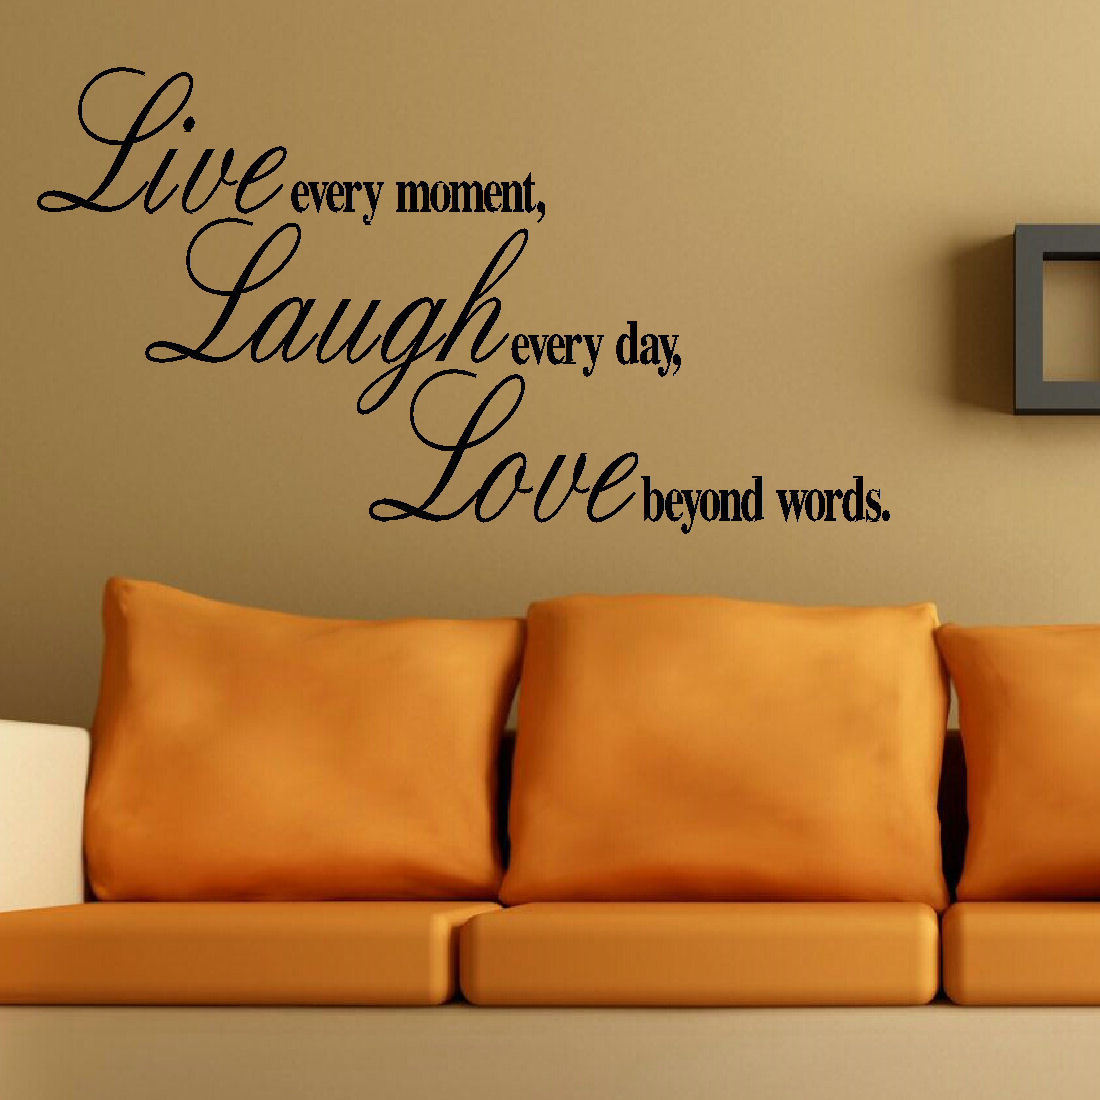 LARGE WALL QUOTE LIVE LAUGH LOVE BEYOND WORDS MURAL STICKER ART TRANSFER  DECAL. Quote ... Part 86